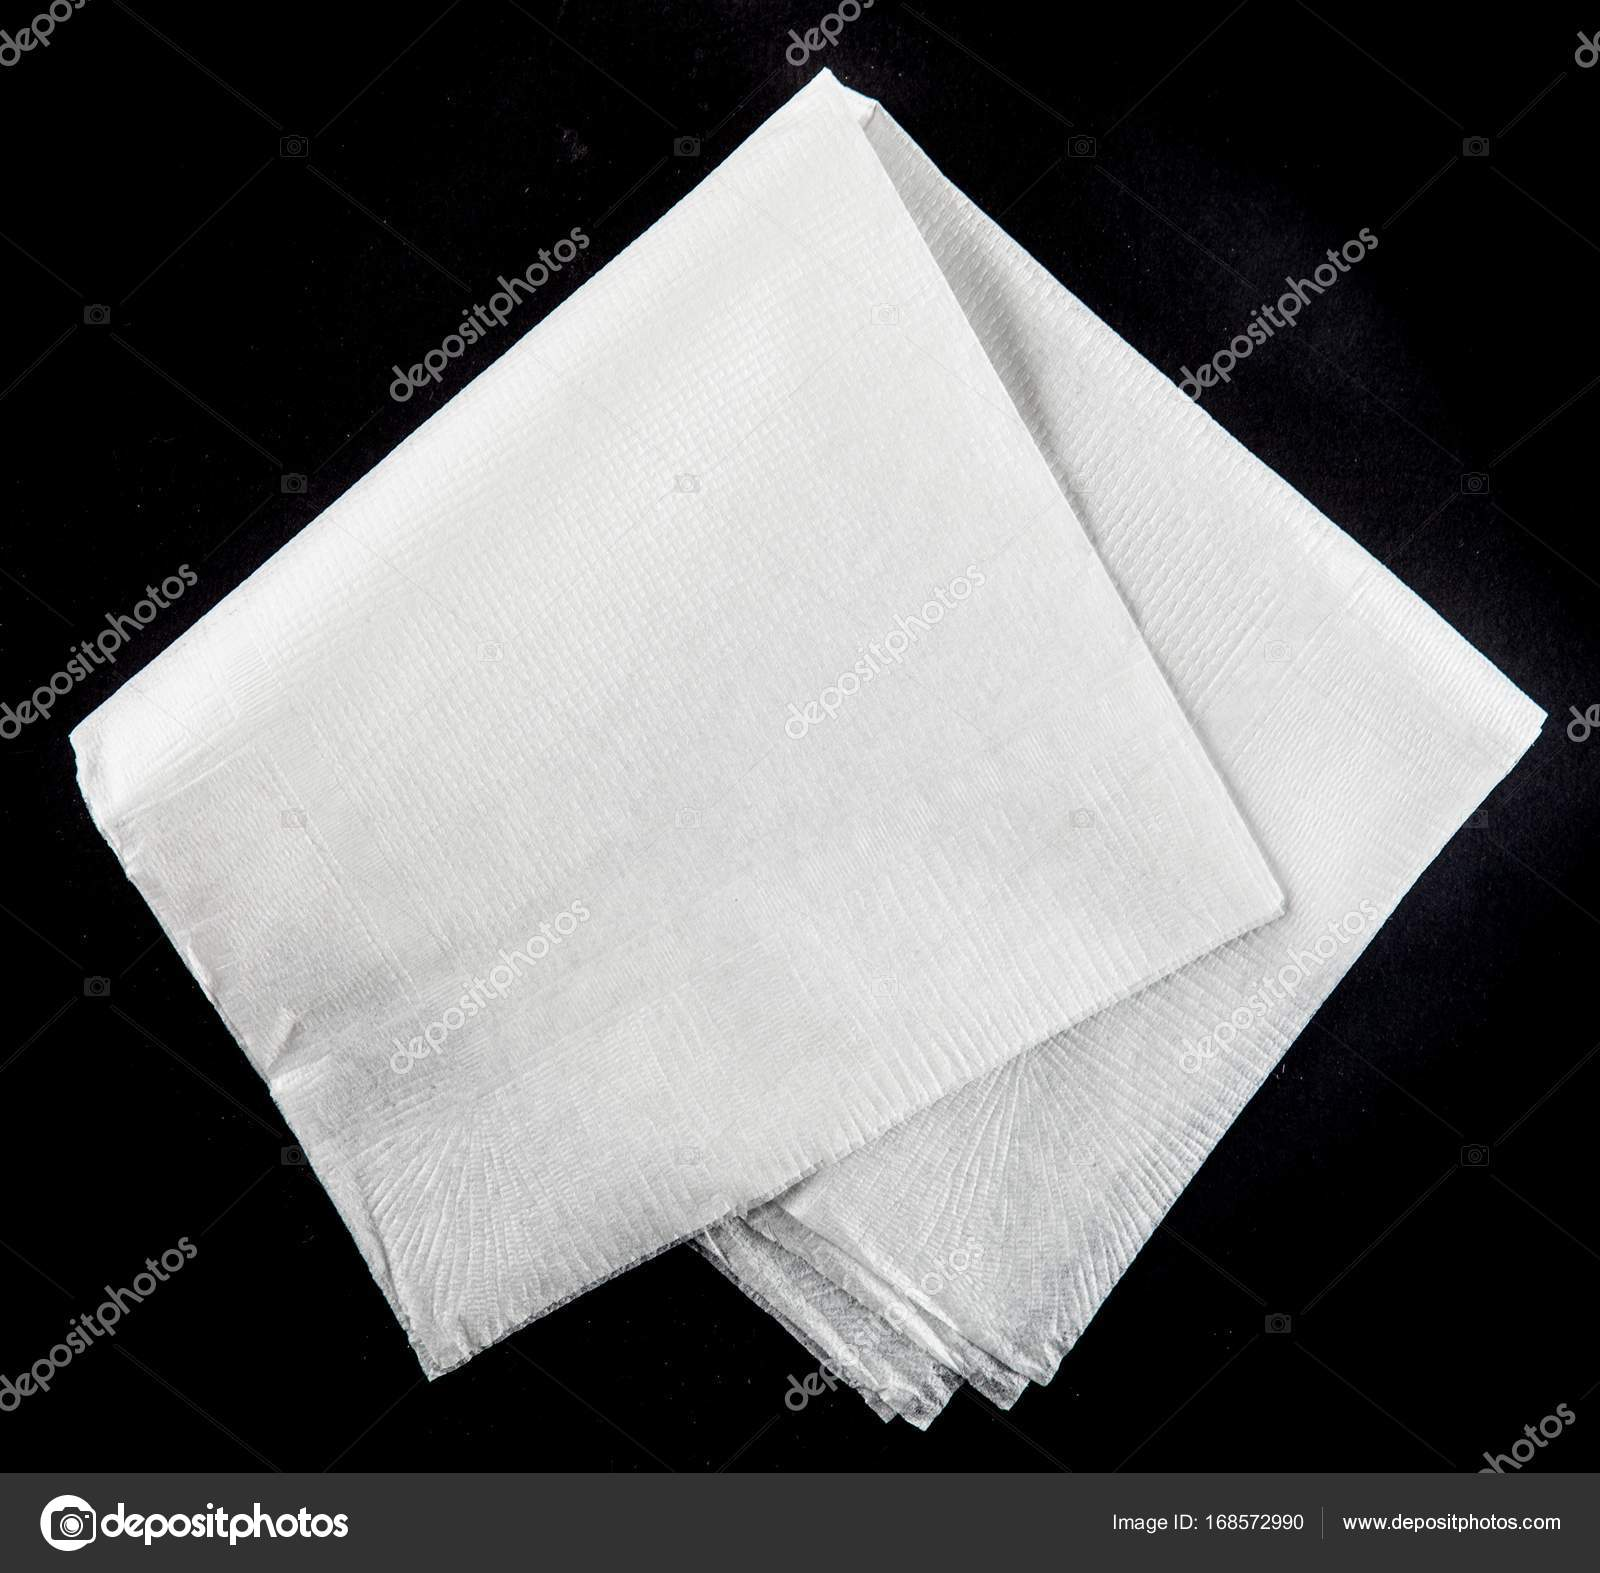 Papel Tecido Papel Tecido Fundo Preto Stock Photo Billiondigital 168572990